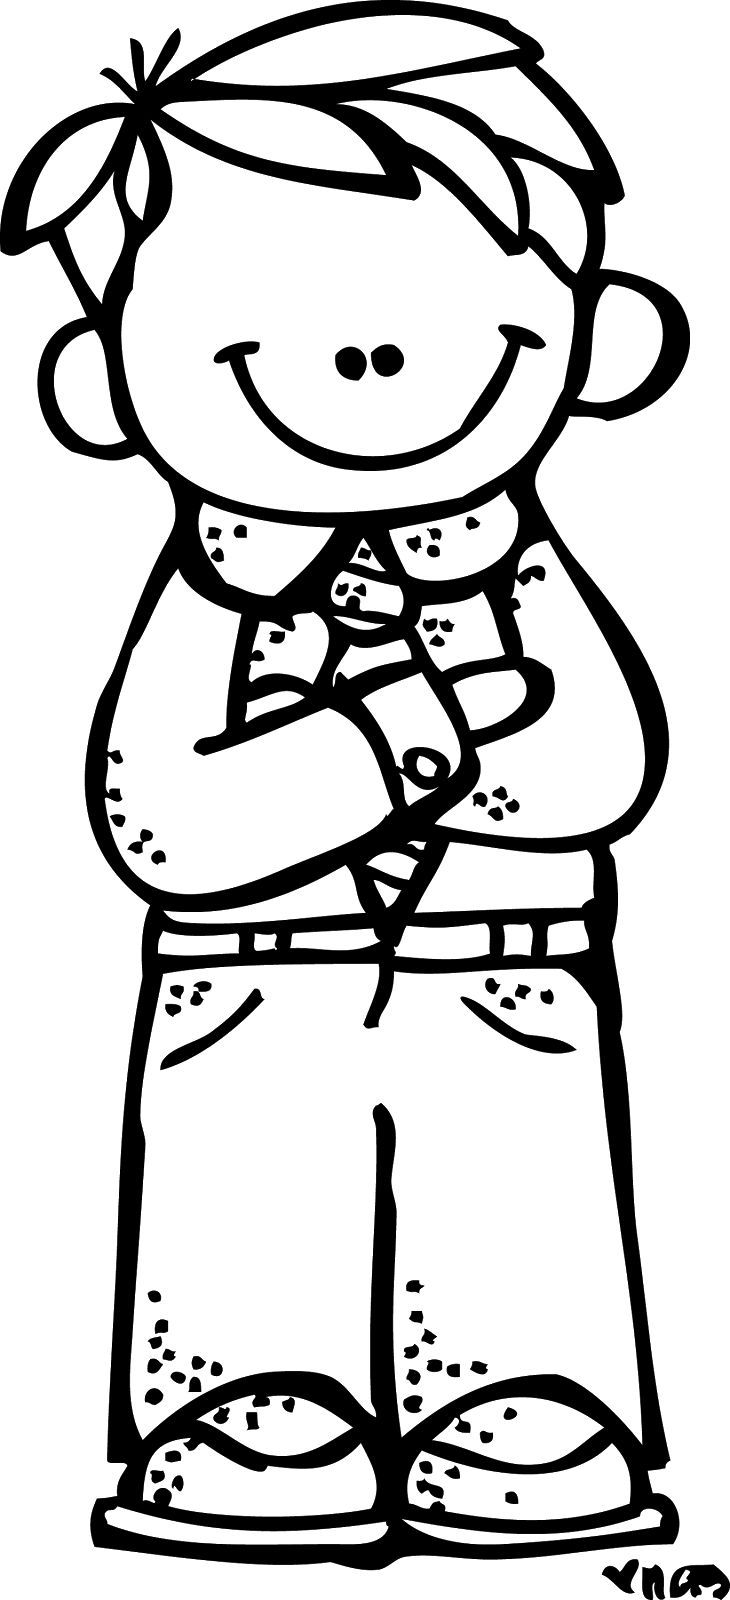 And girl church primary. Lds clipart boy